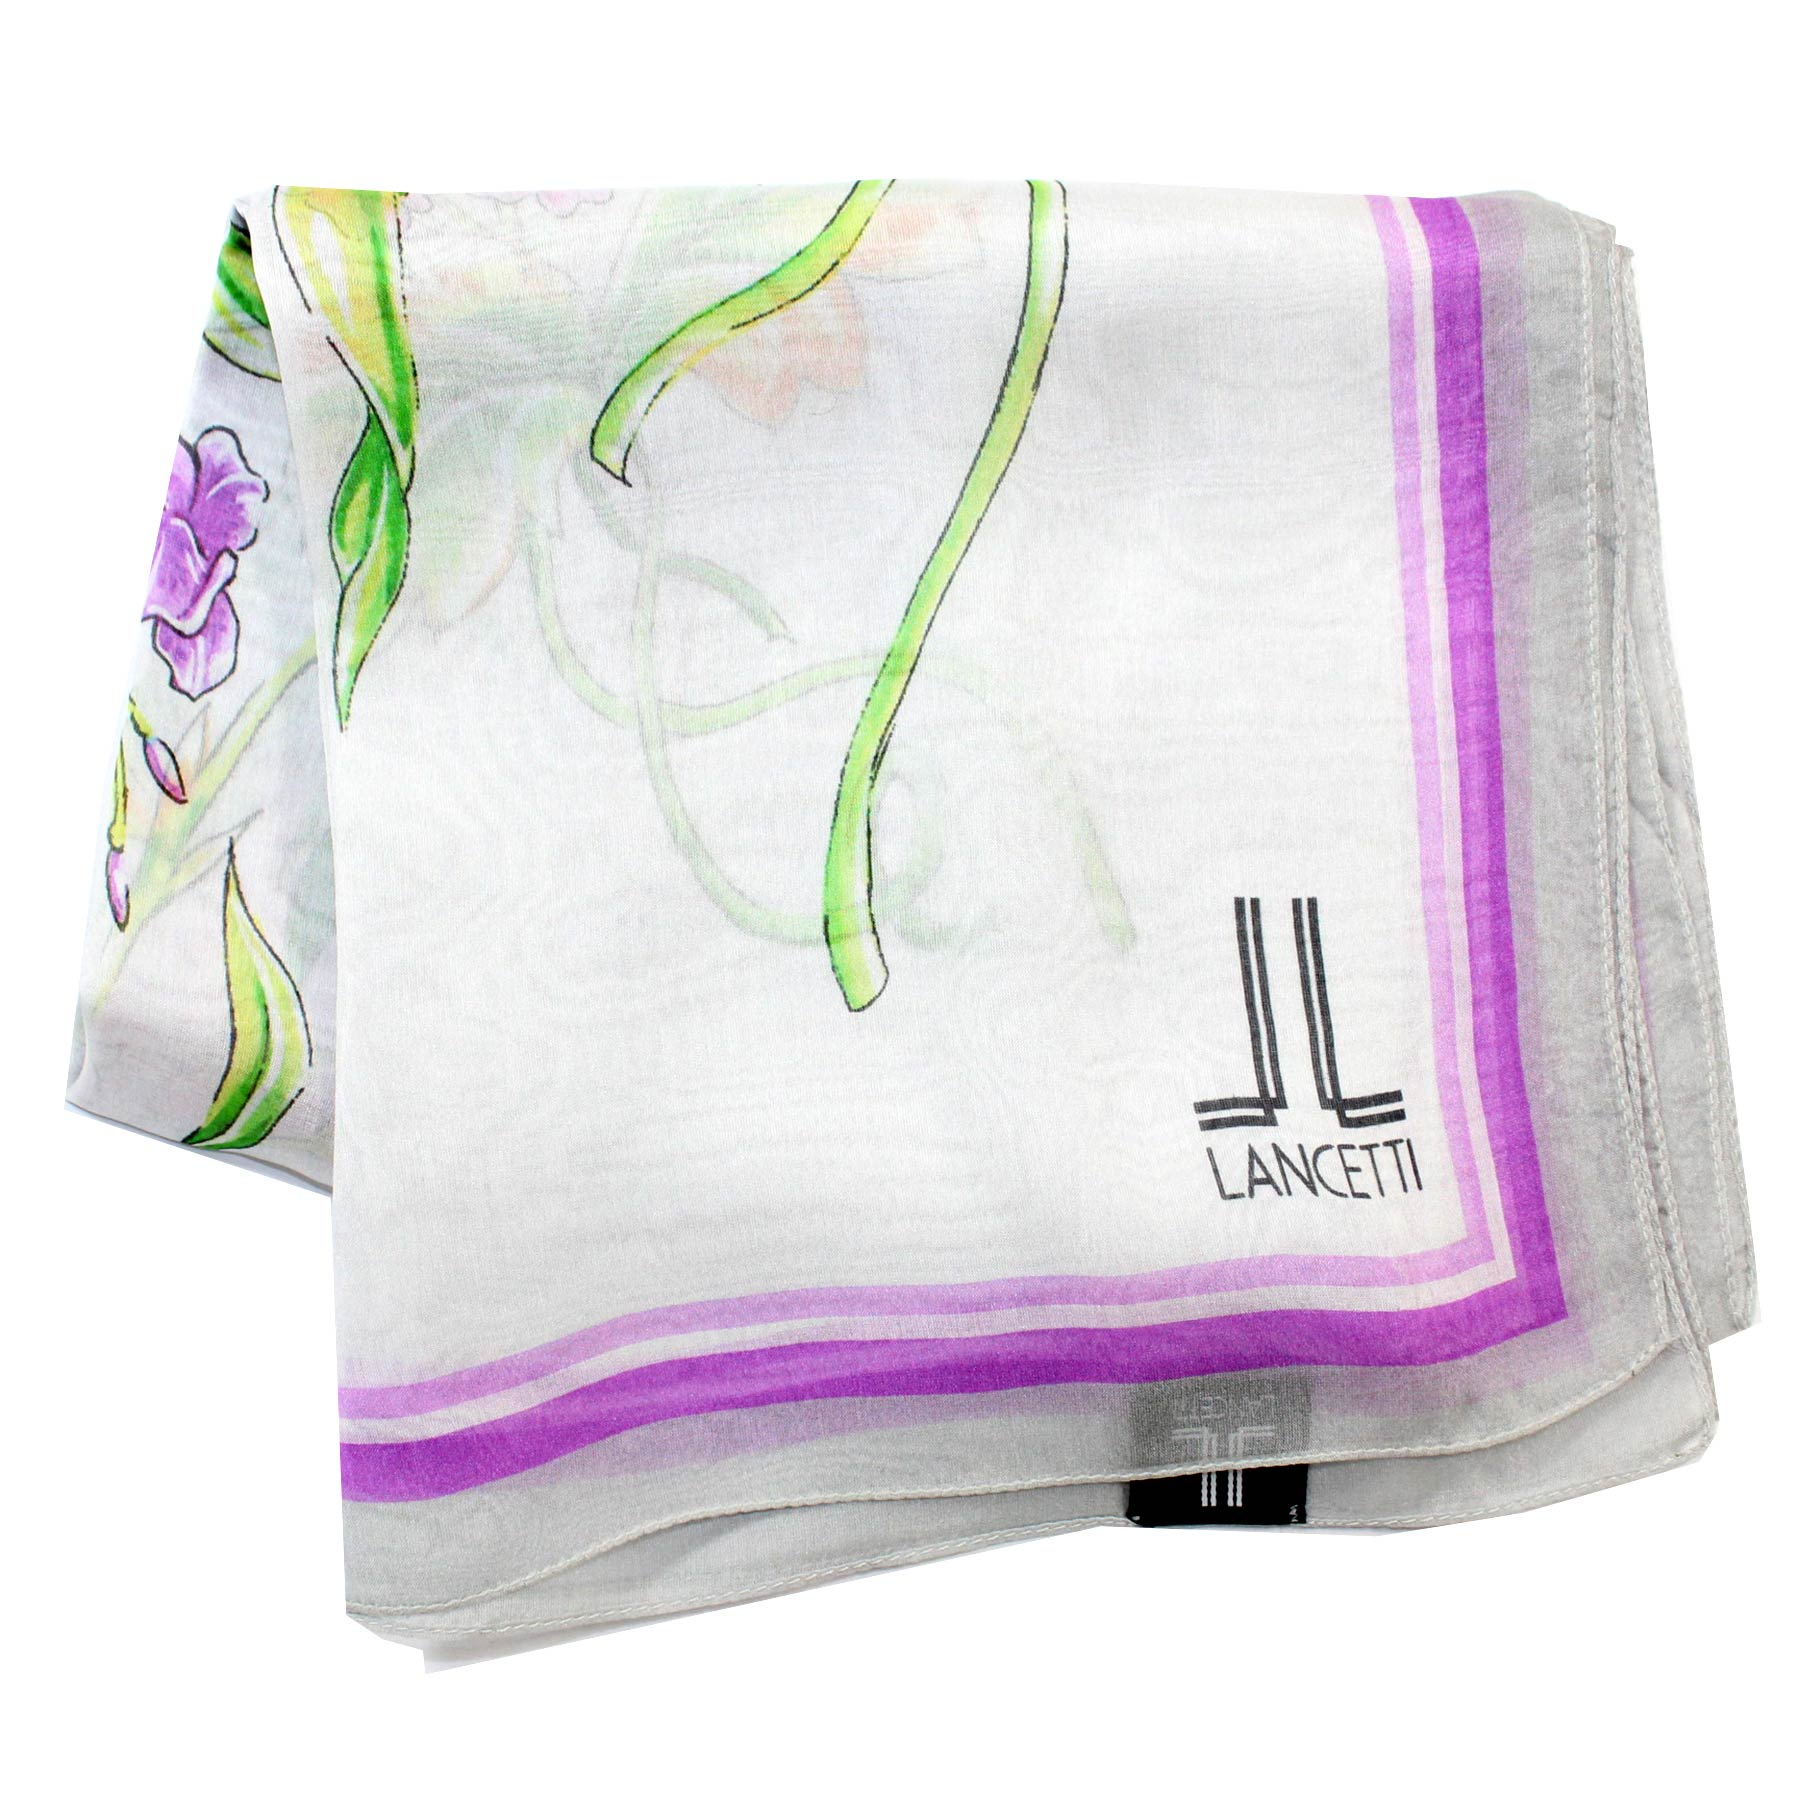 Lancetti Scarf Lilac Green Floral Chiffon Silk Shawl - Made In Ital